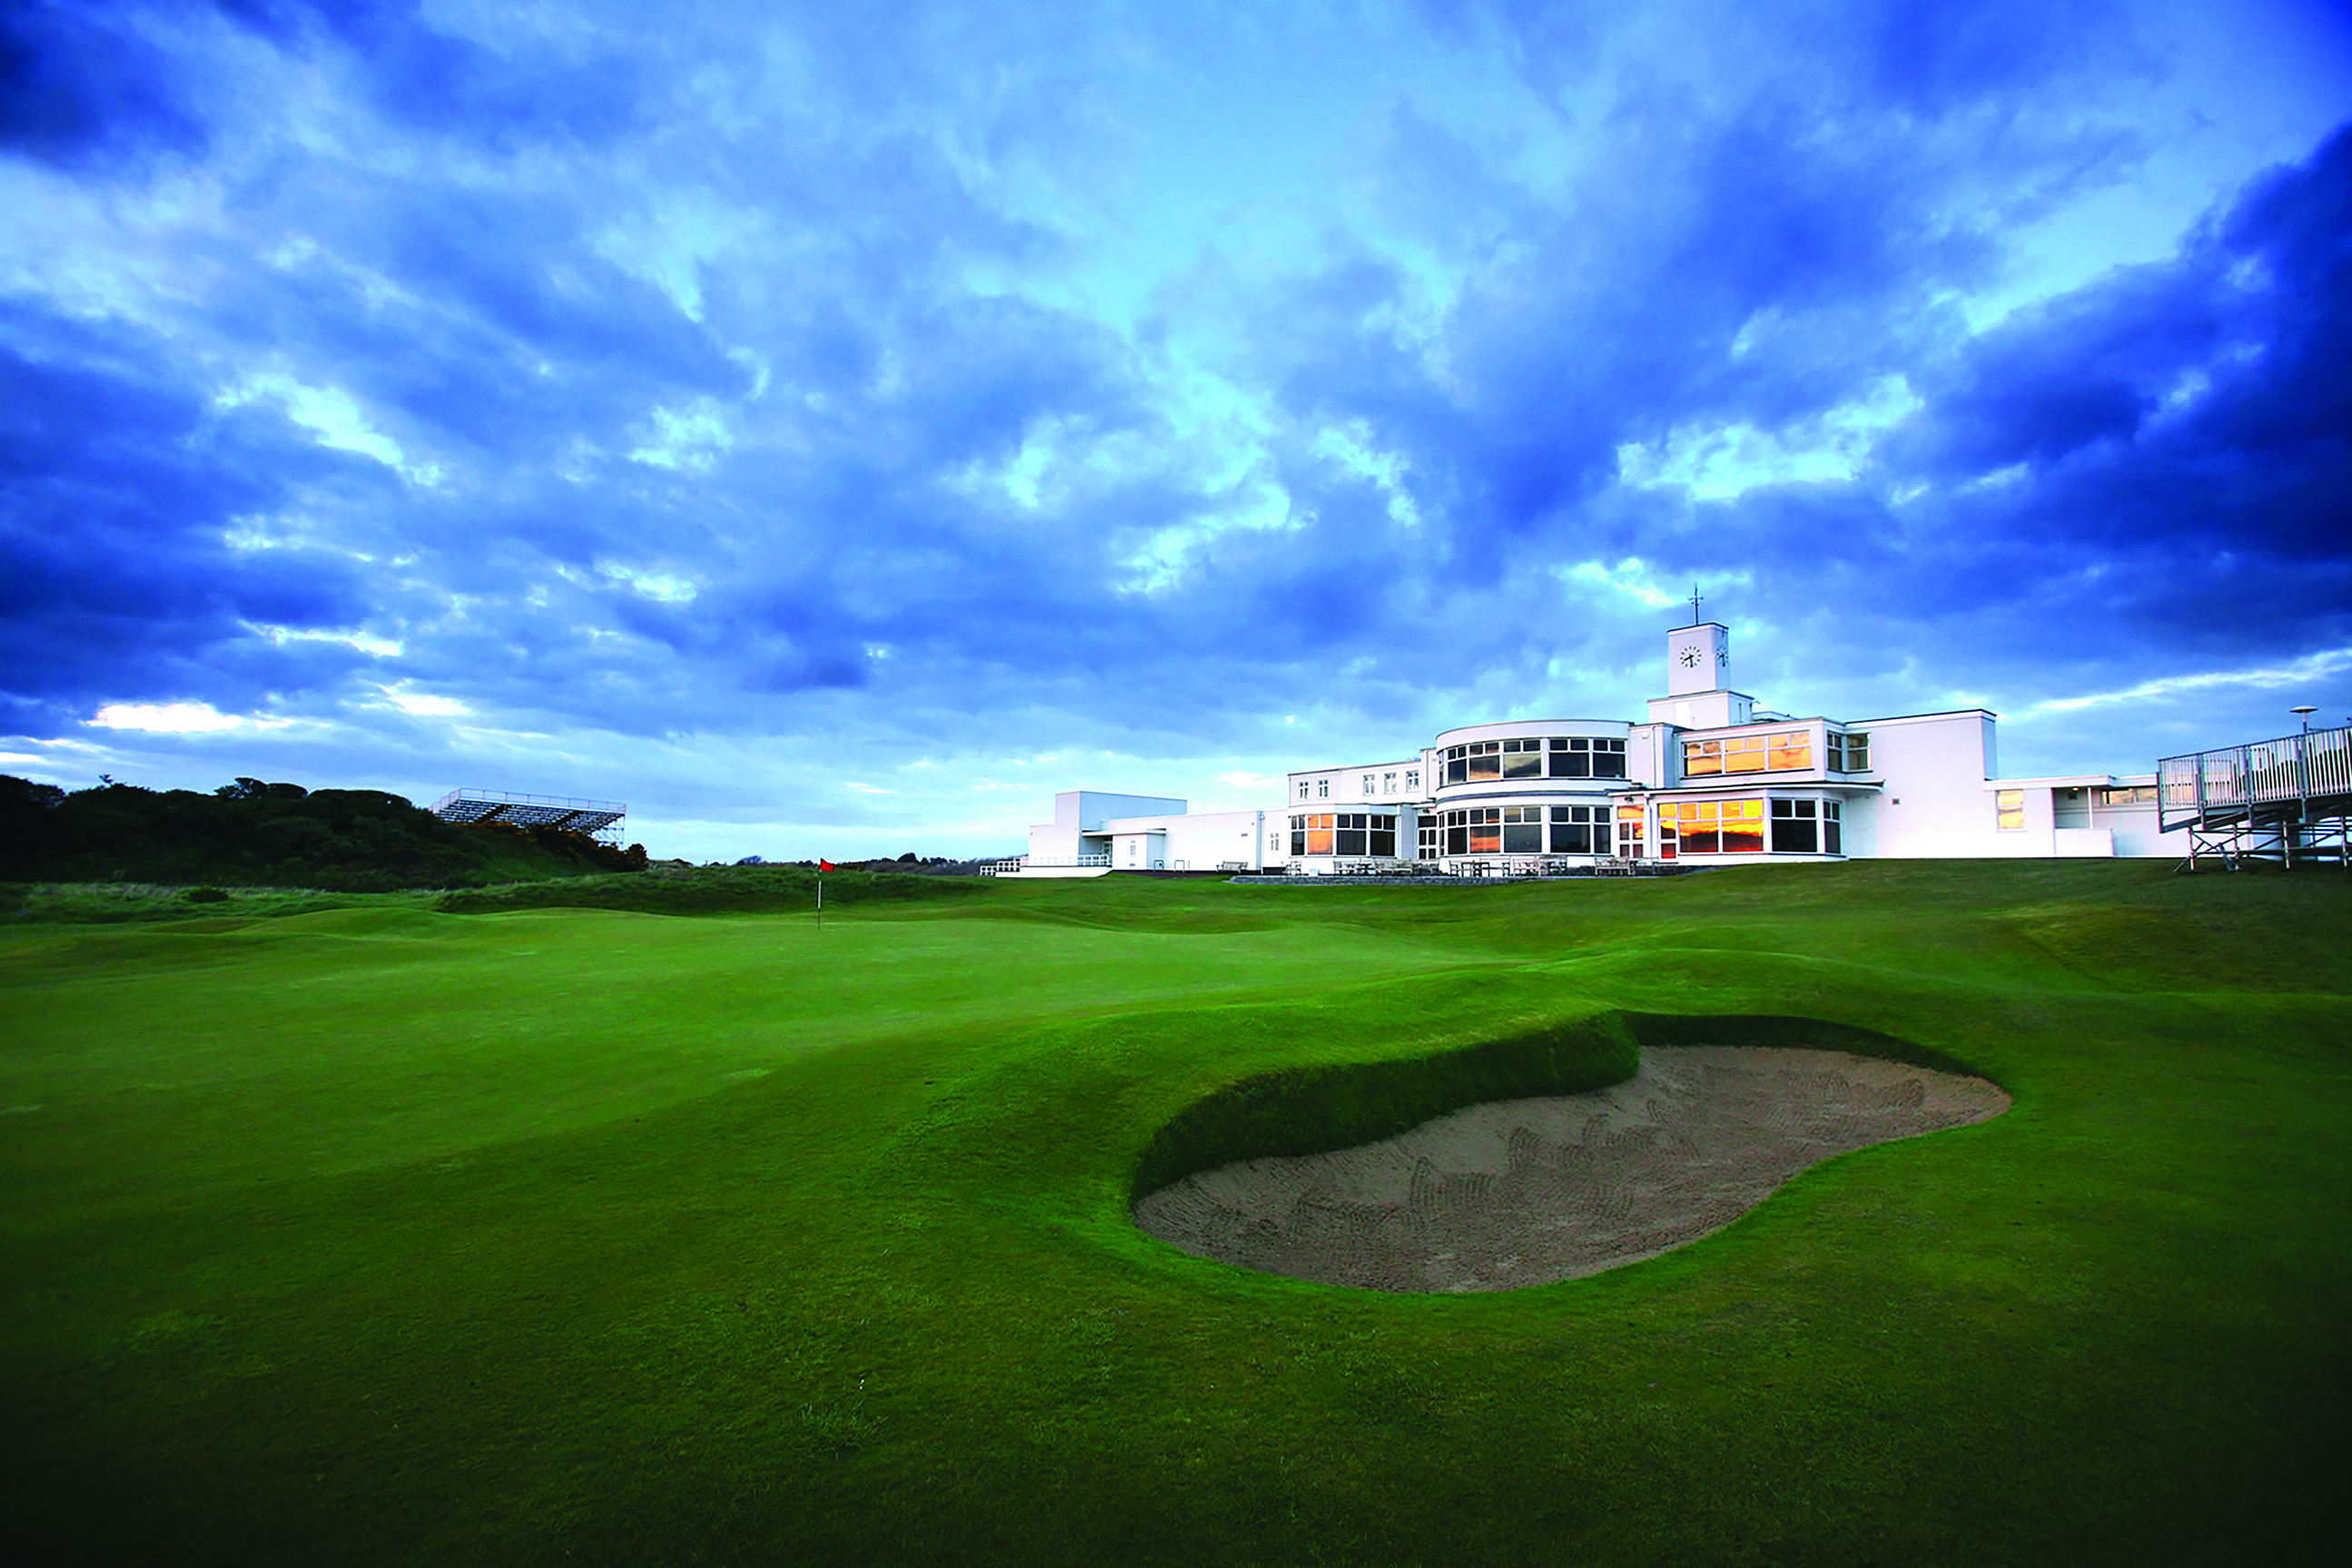 Getting Royal Birkdale ready for The Open